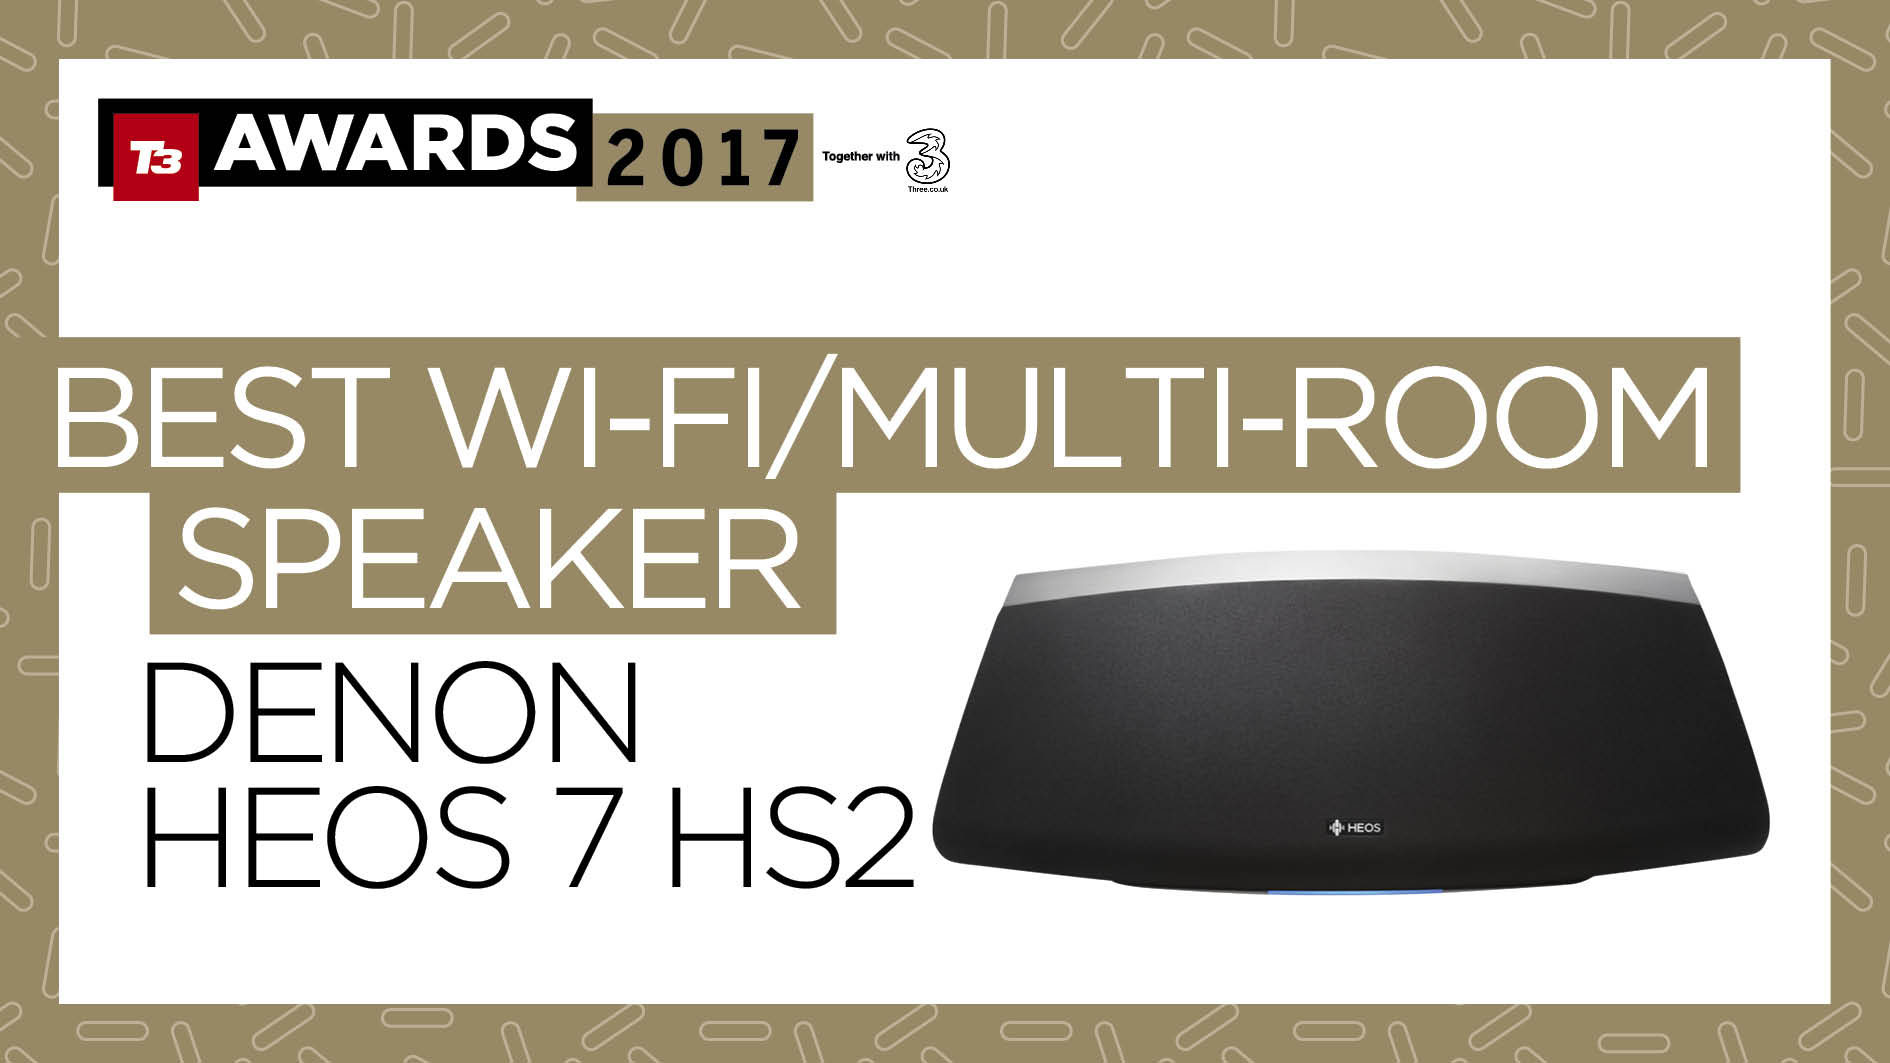 The T3 Awards 2017 Together With Three All Of This Years Winners 2 Way Speaker Switch Maplin